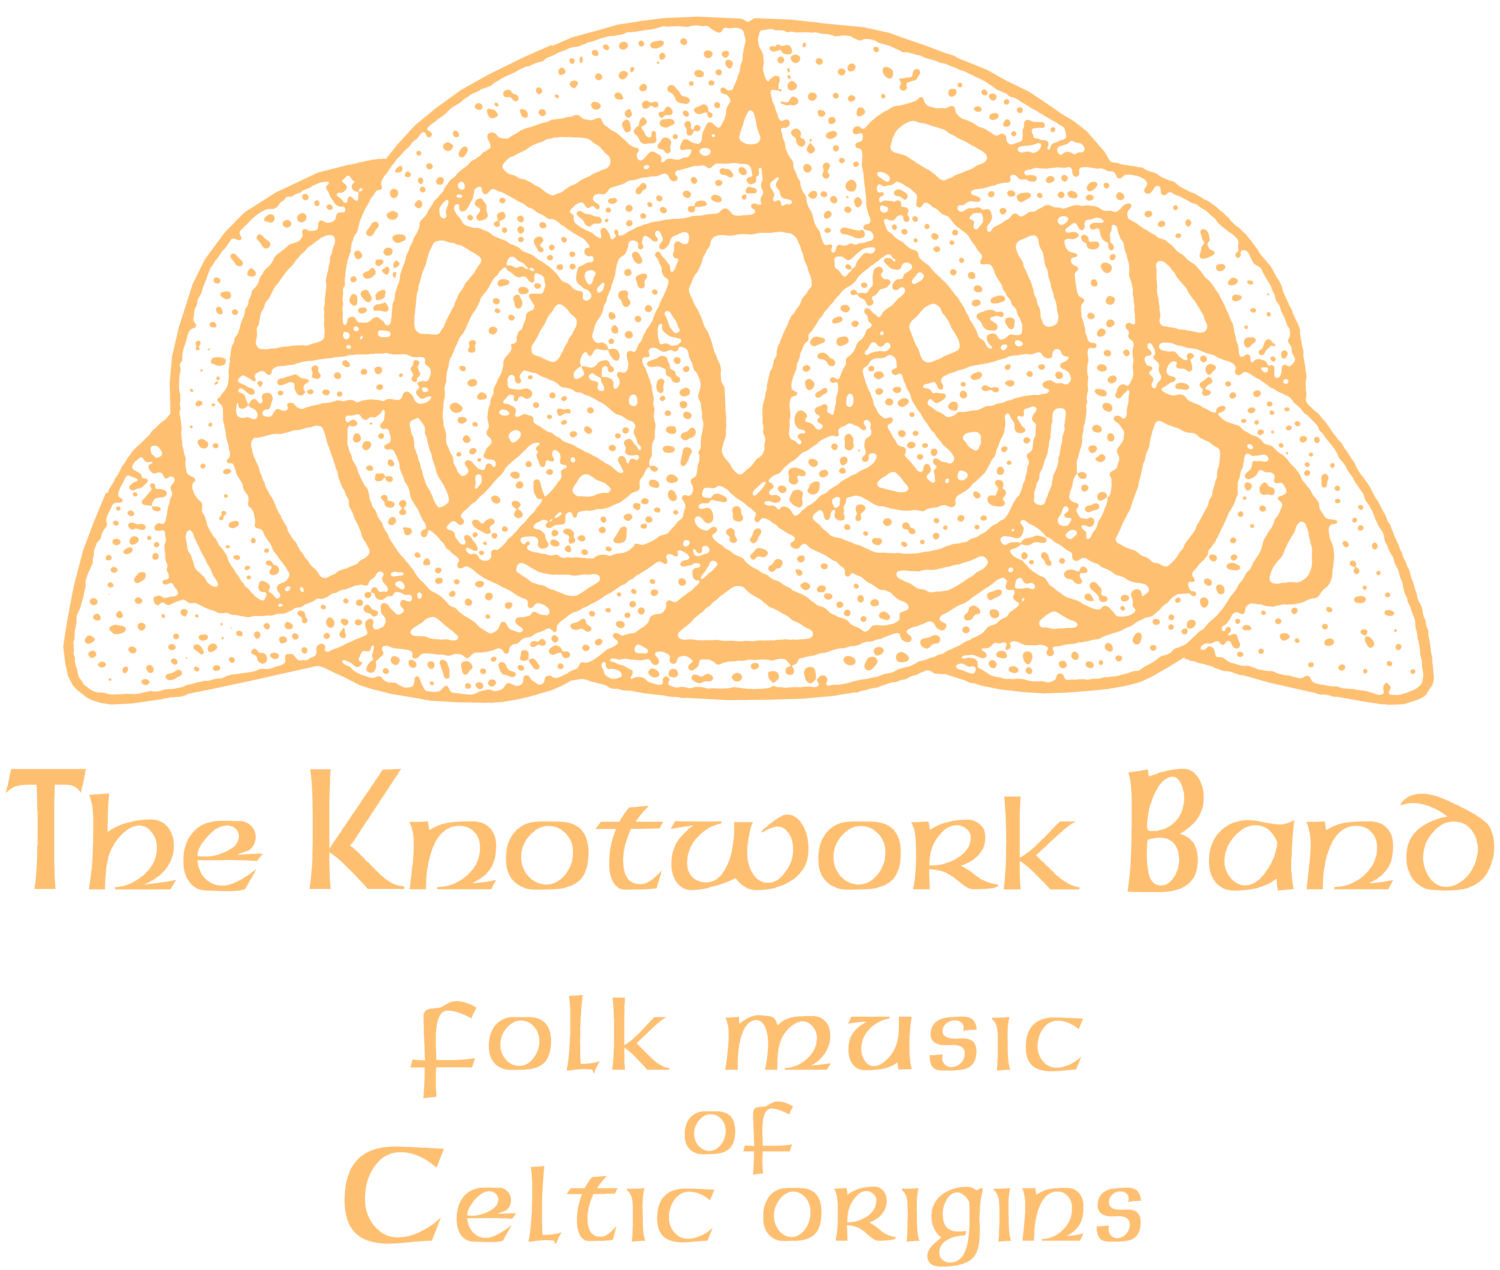 Celtic band png. The knotwork